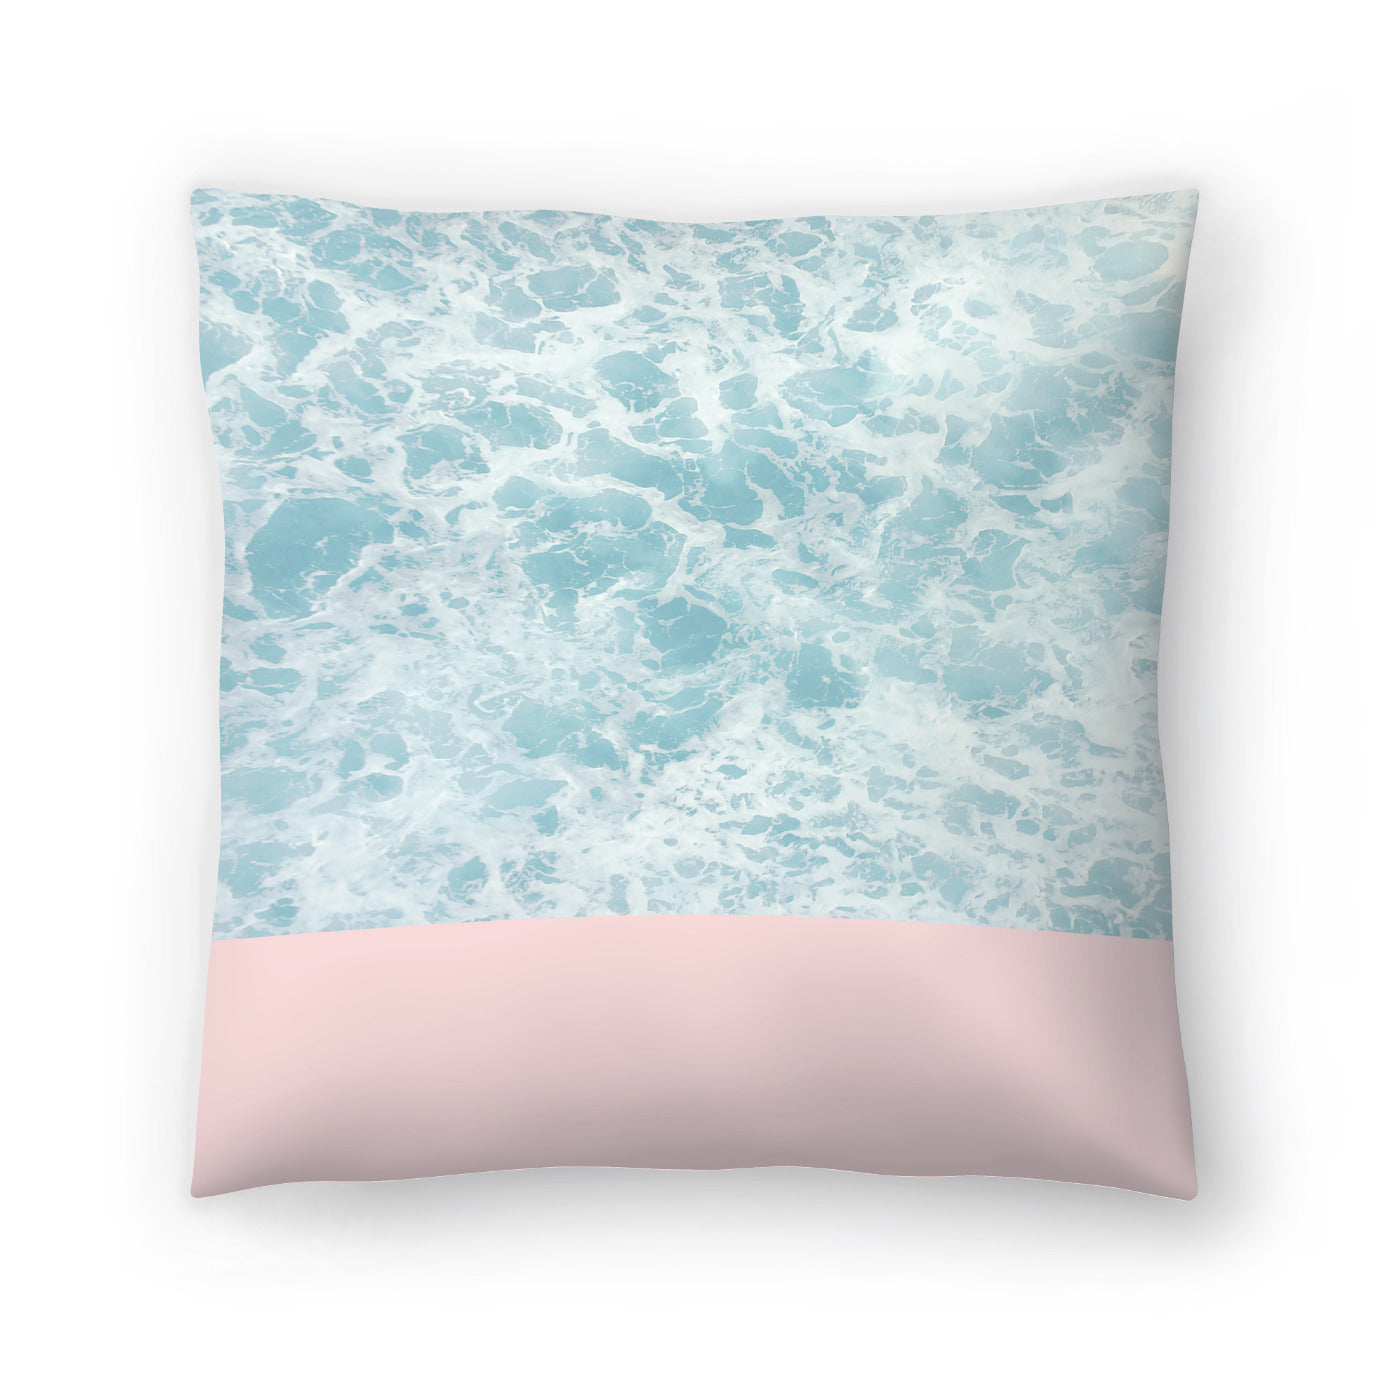 Pink On The Sea by Emanuela Carratoni Decorative Pillow - Decorative Pillow - Americanflat